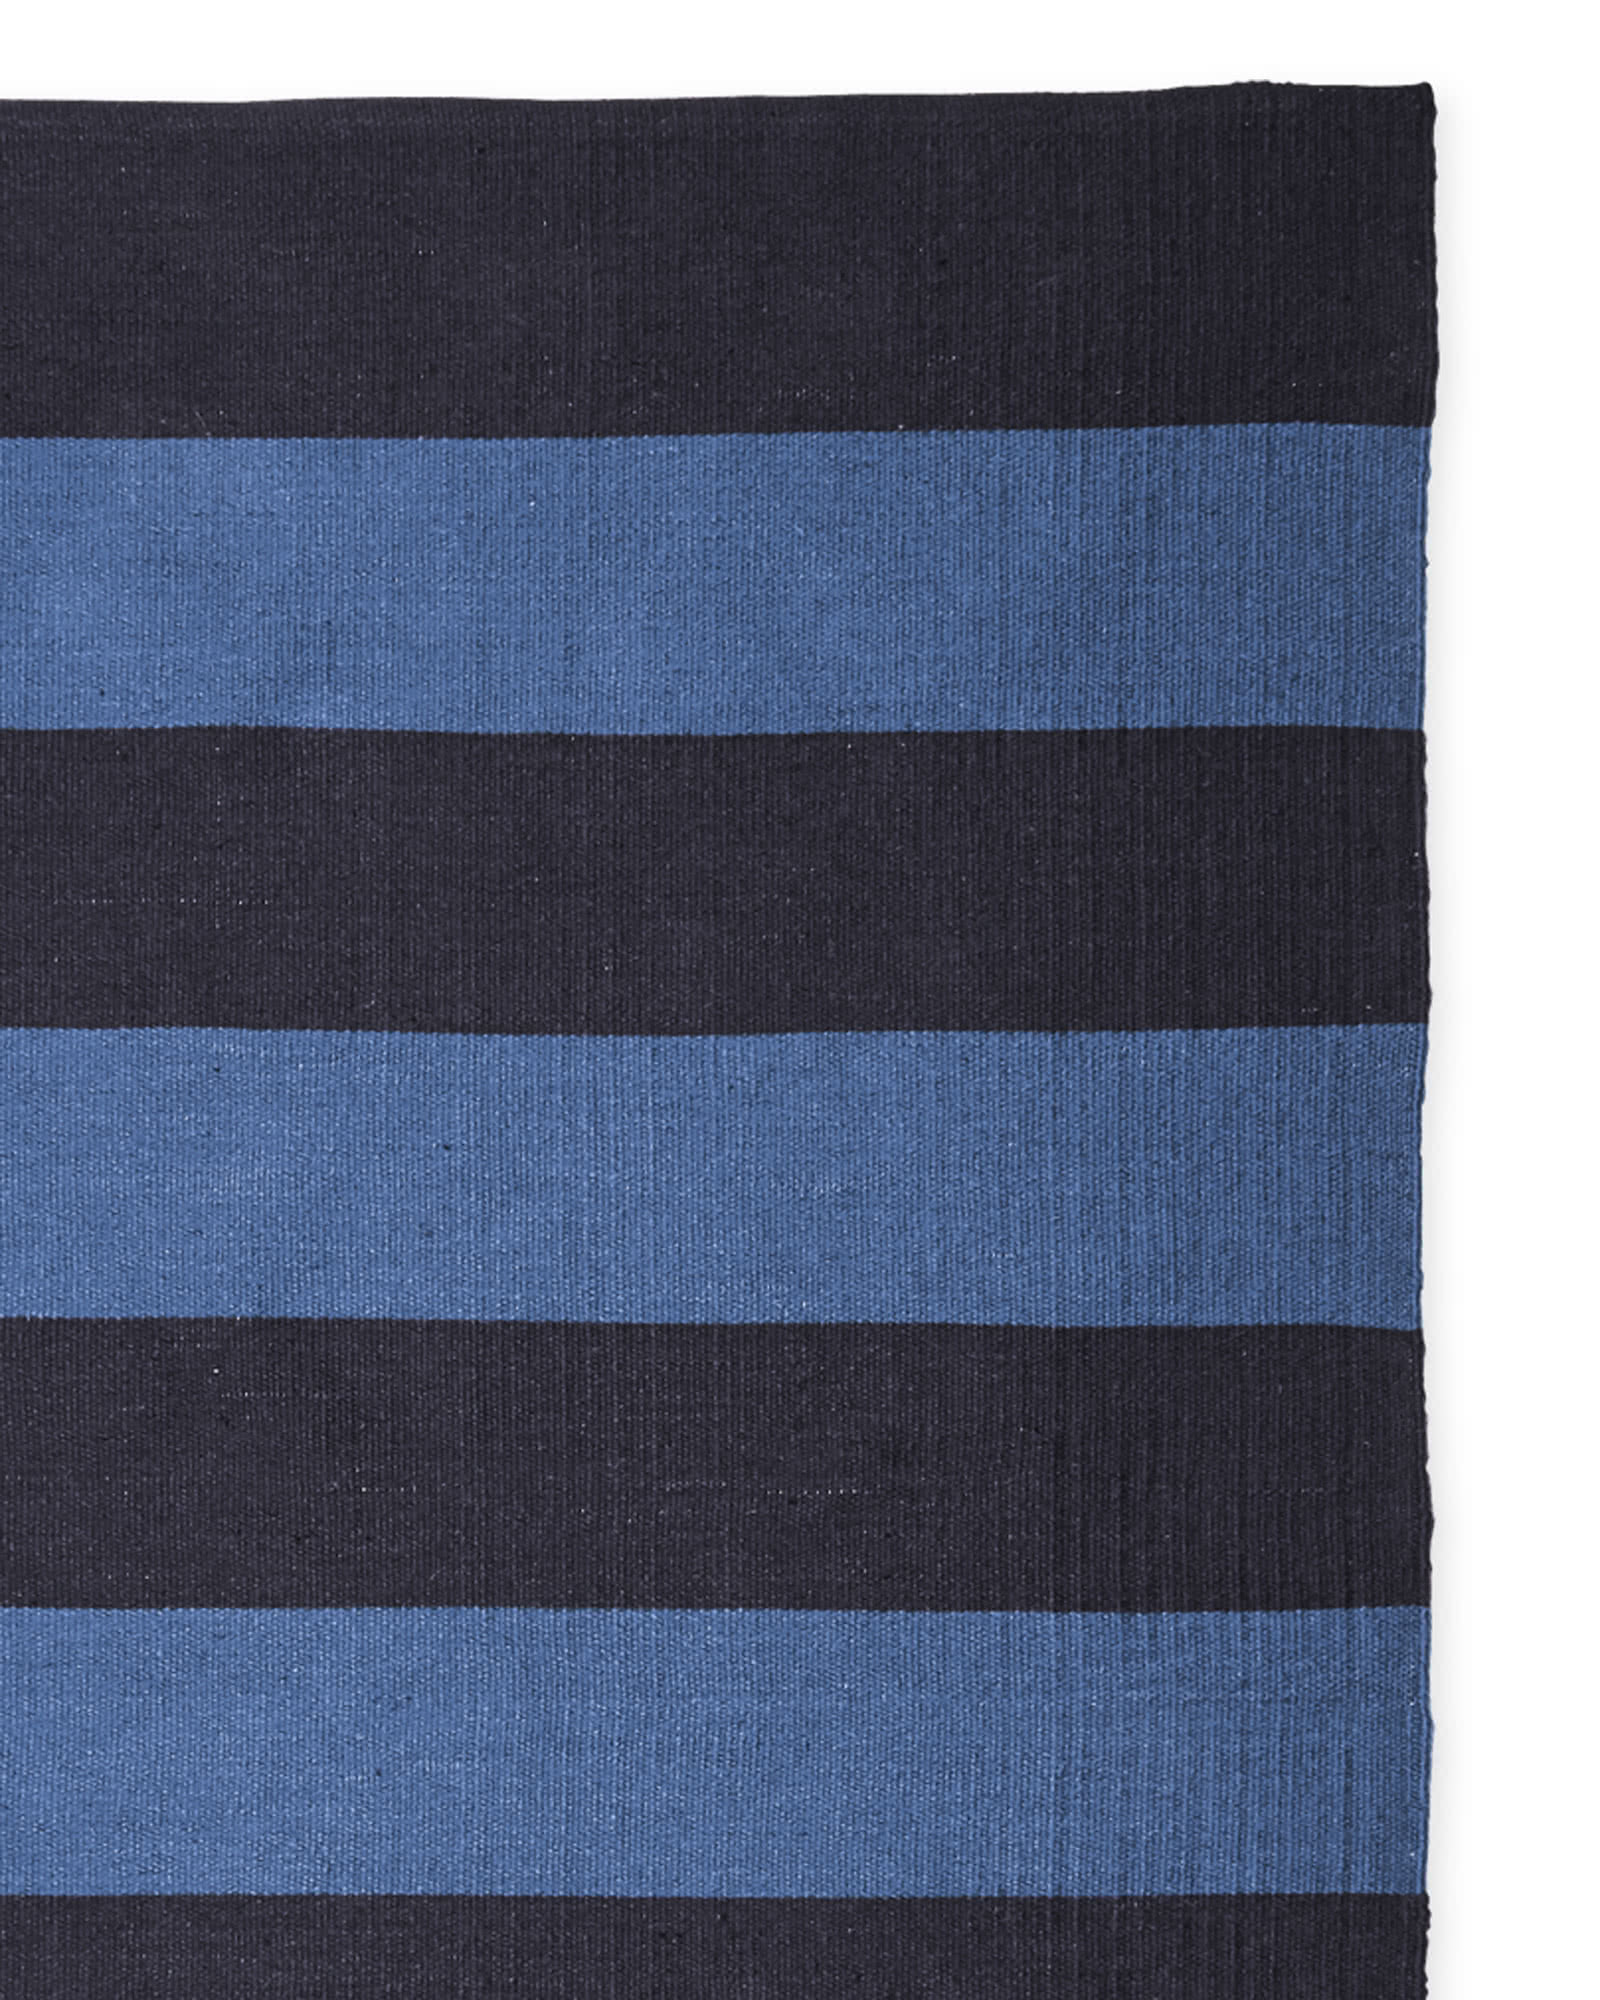 Lido Stripe Outdoor Rug